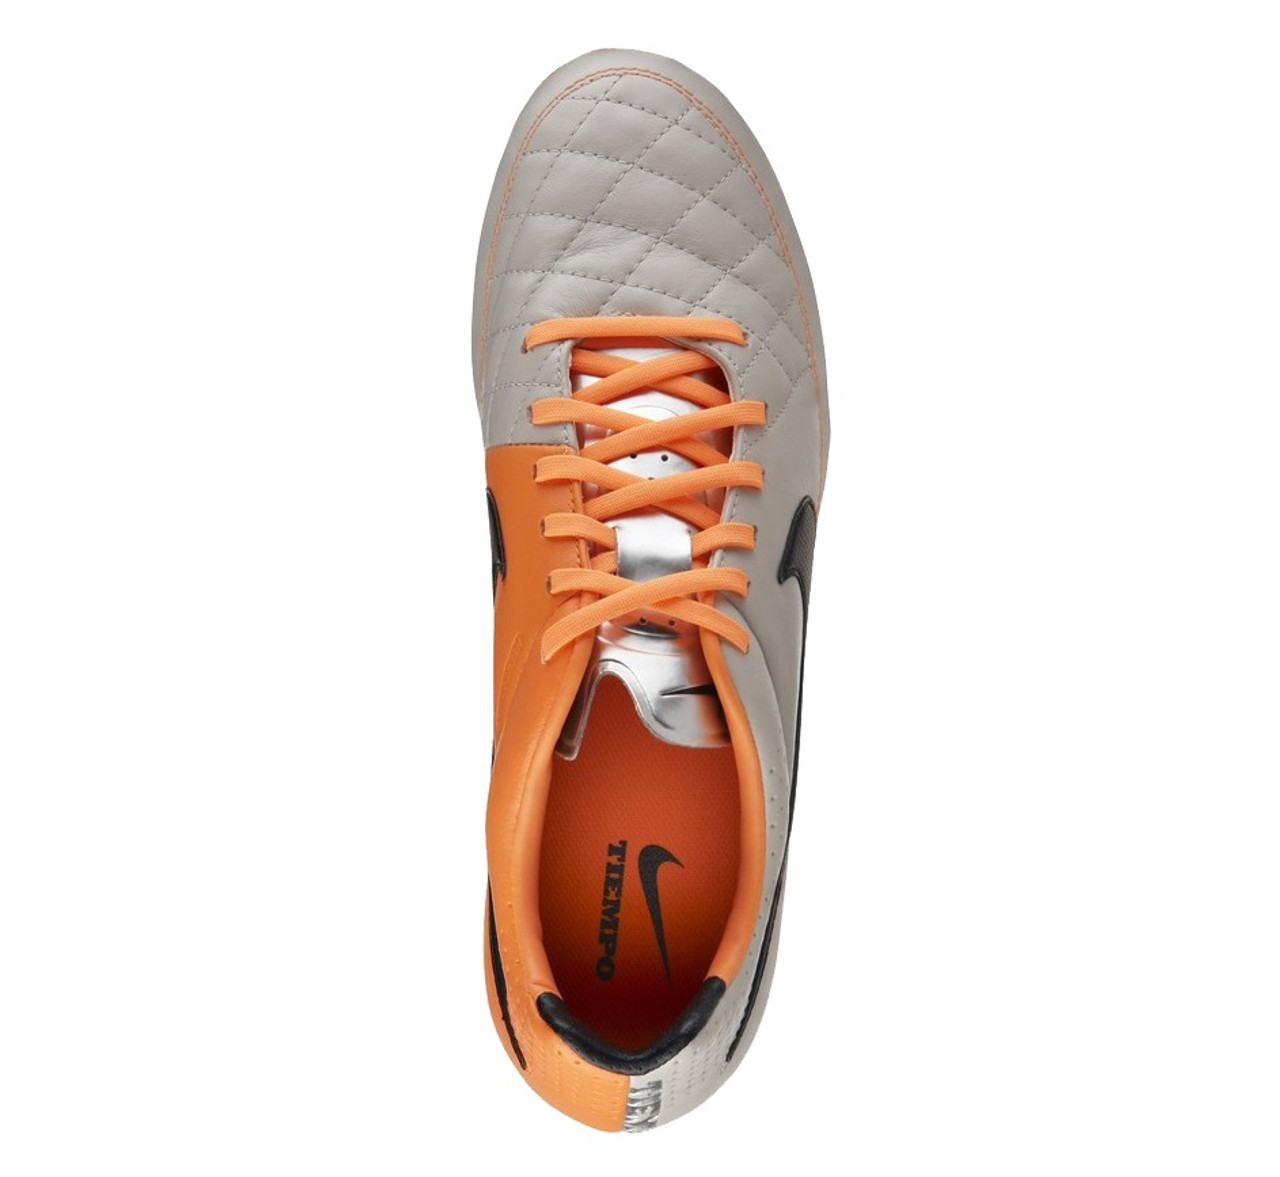 dcd7e4ac9f4c ... Nike Tiempo Legacy AG - Desert Sand/Black/Total Orange RC (113017). Add  to Cart